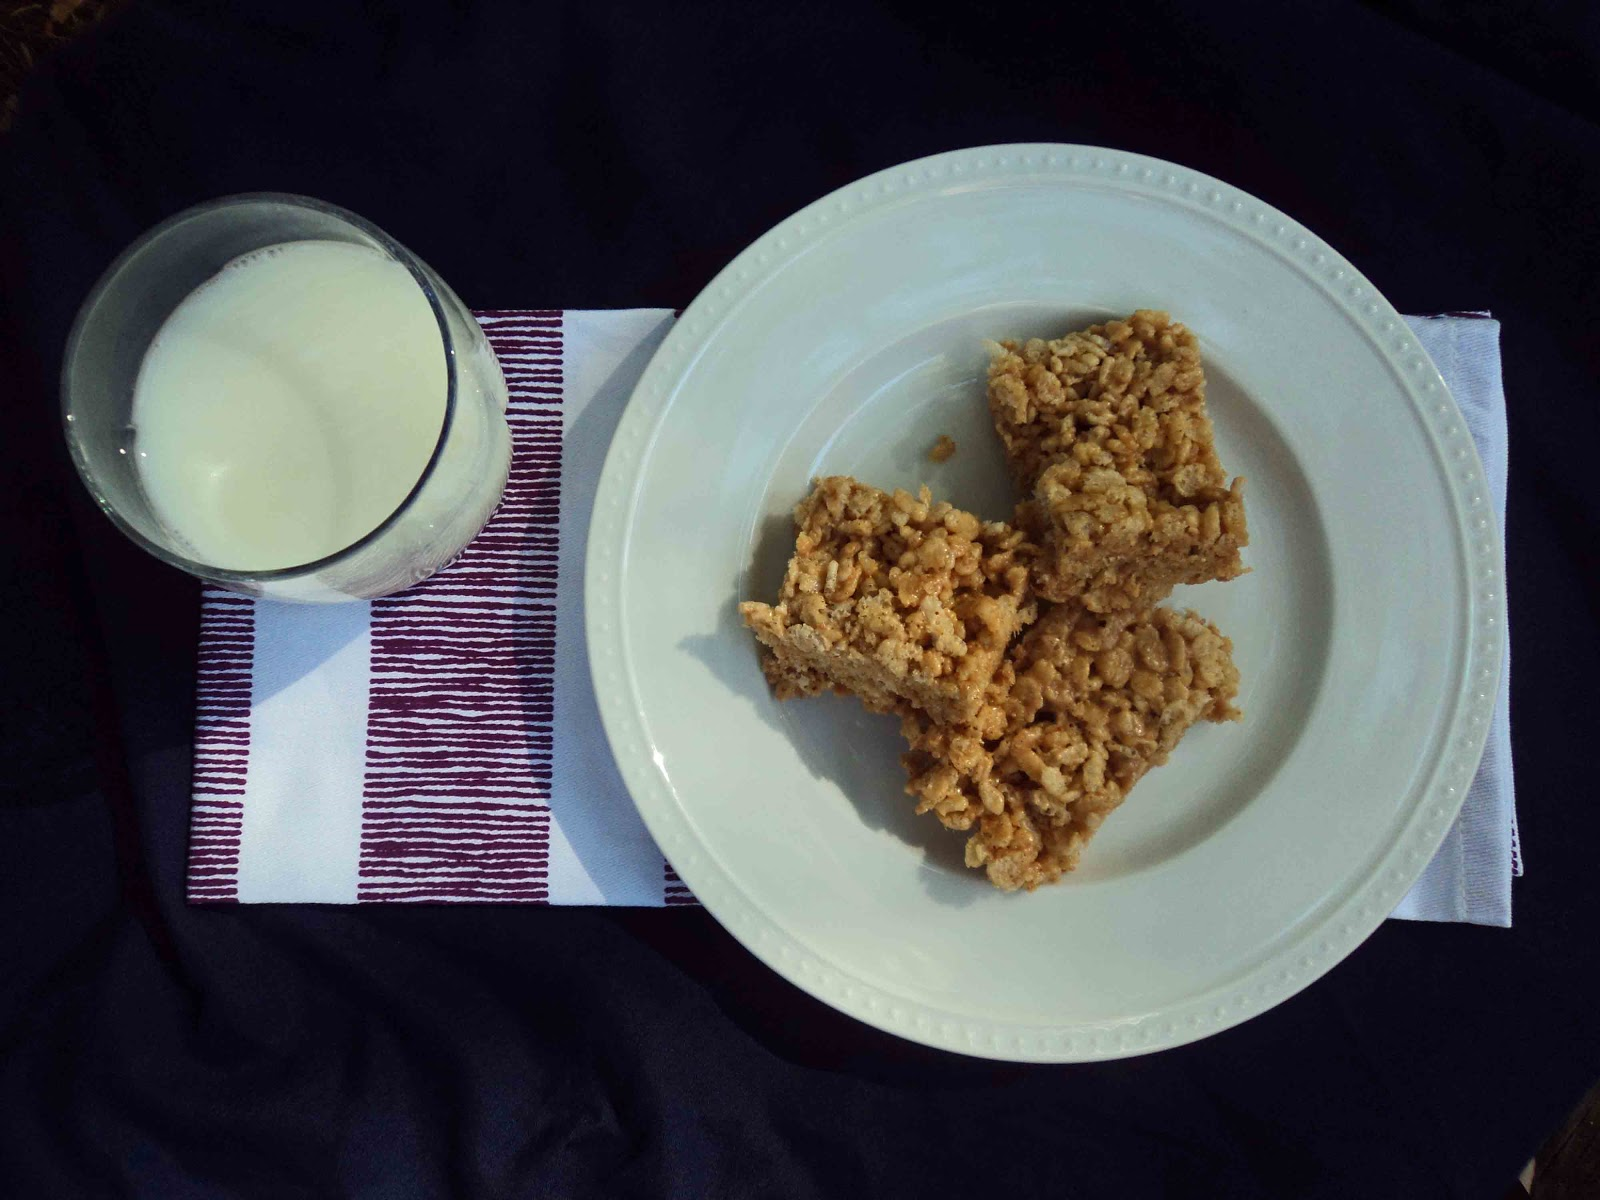 Sweet & Salty Southern Comfort: Peanut Butter Rice Crispy Treats